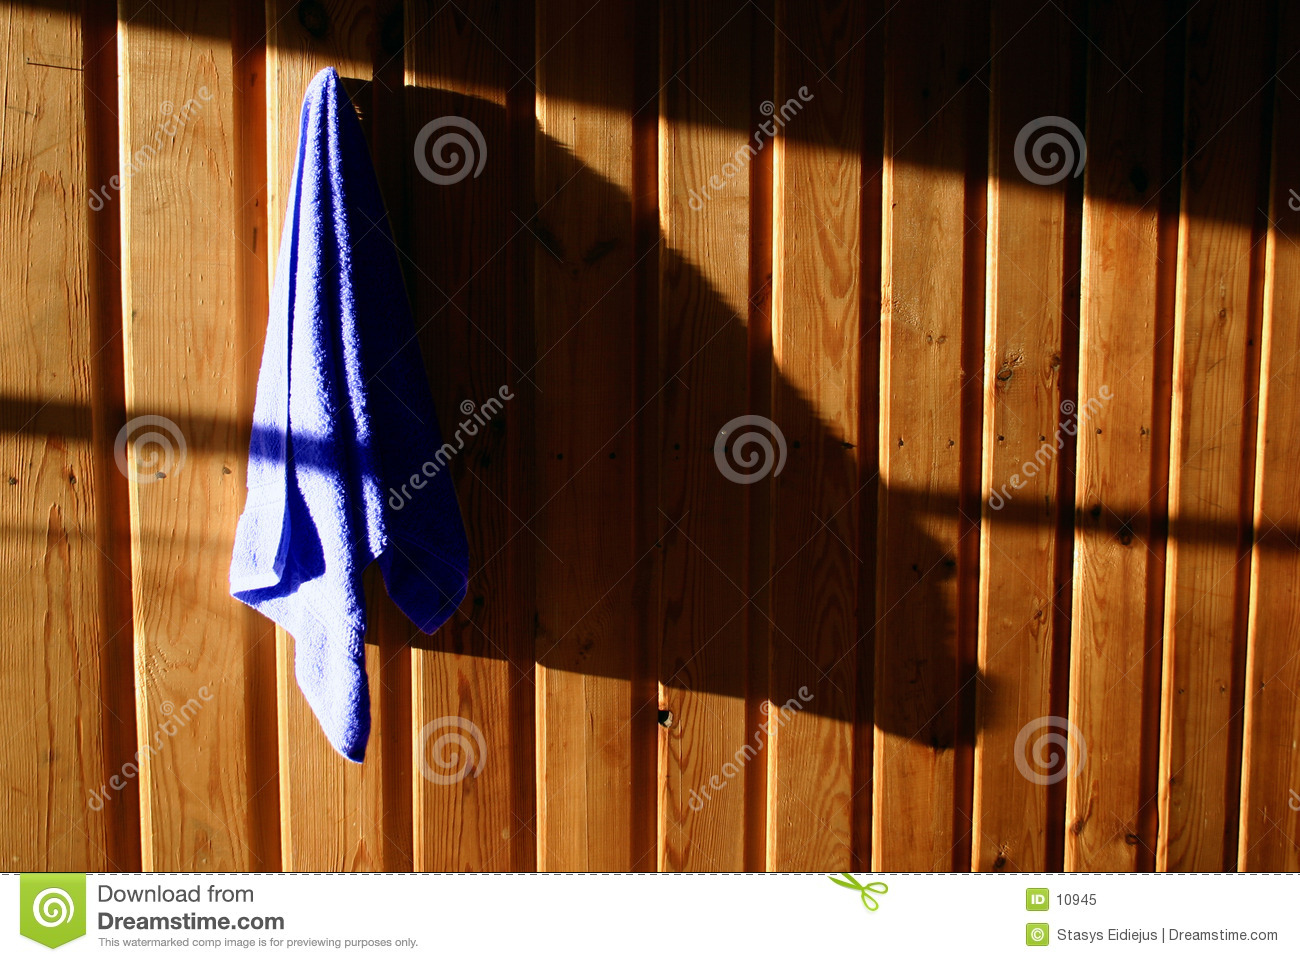 Towel on the wall